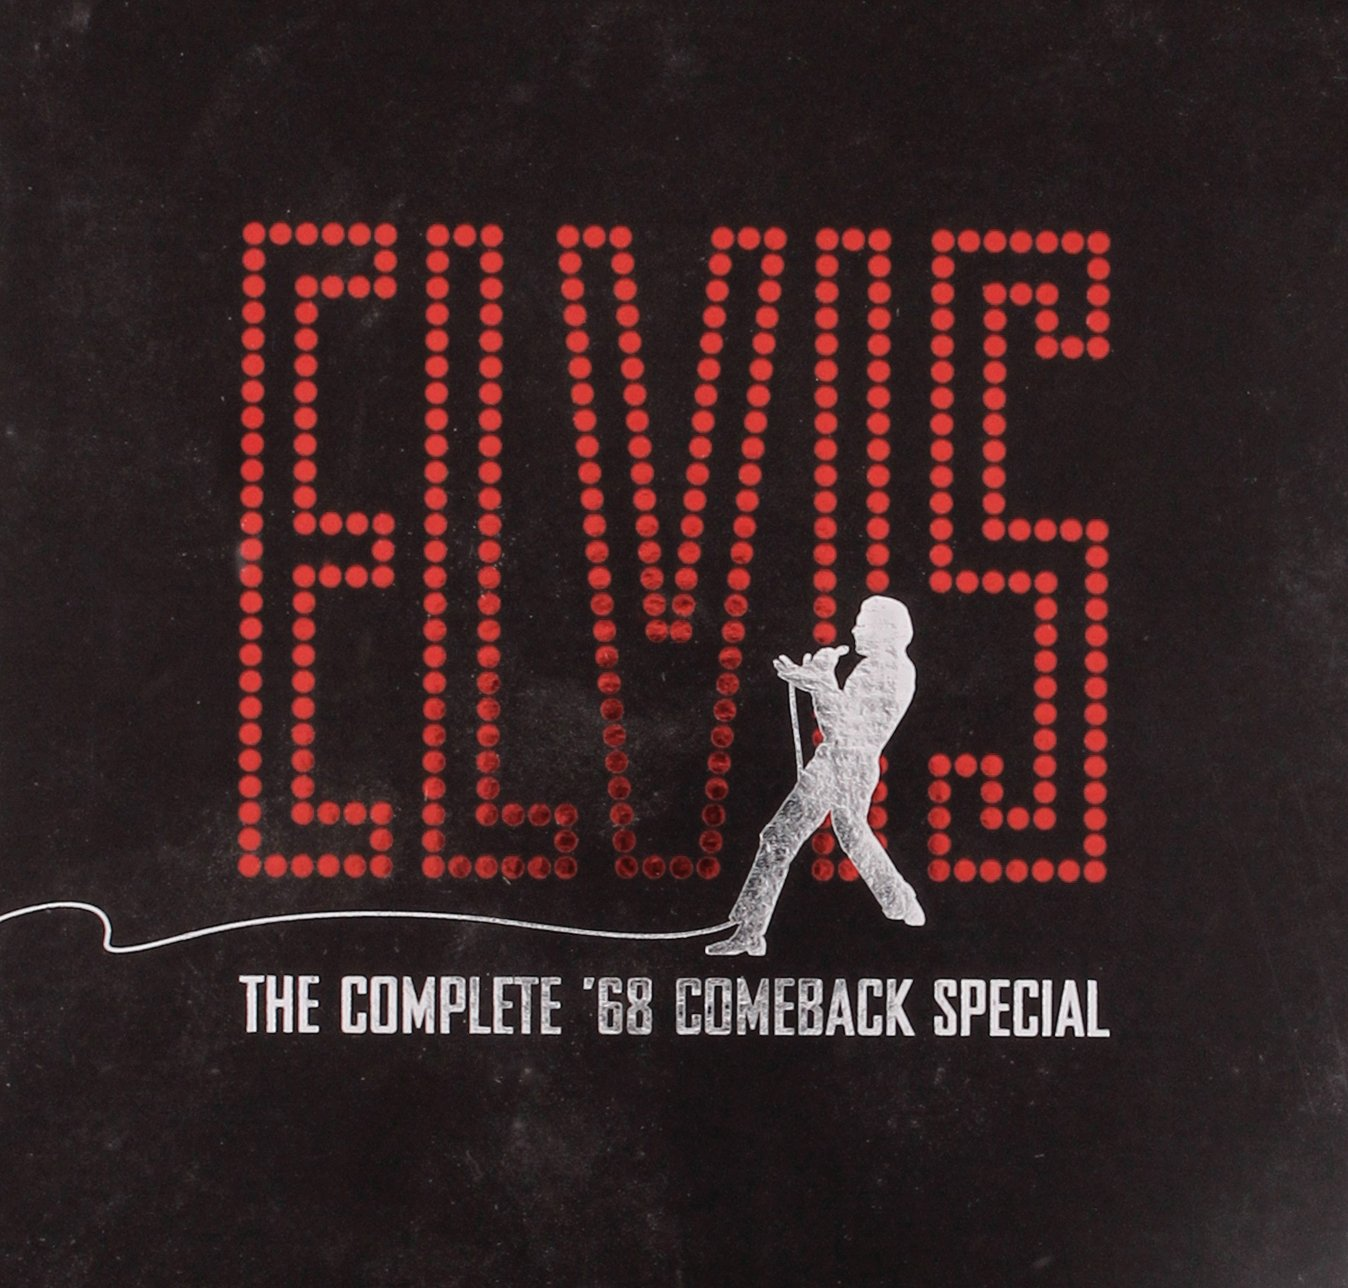 The Complete '68 Comeback Special: The 40th Anniversary Edition